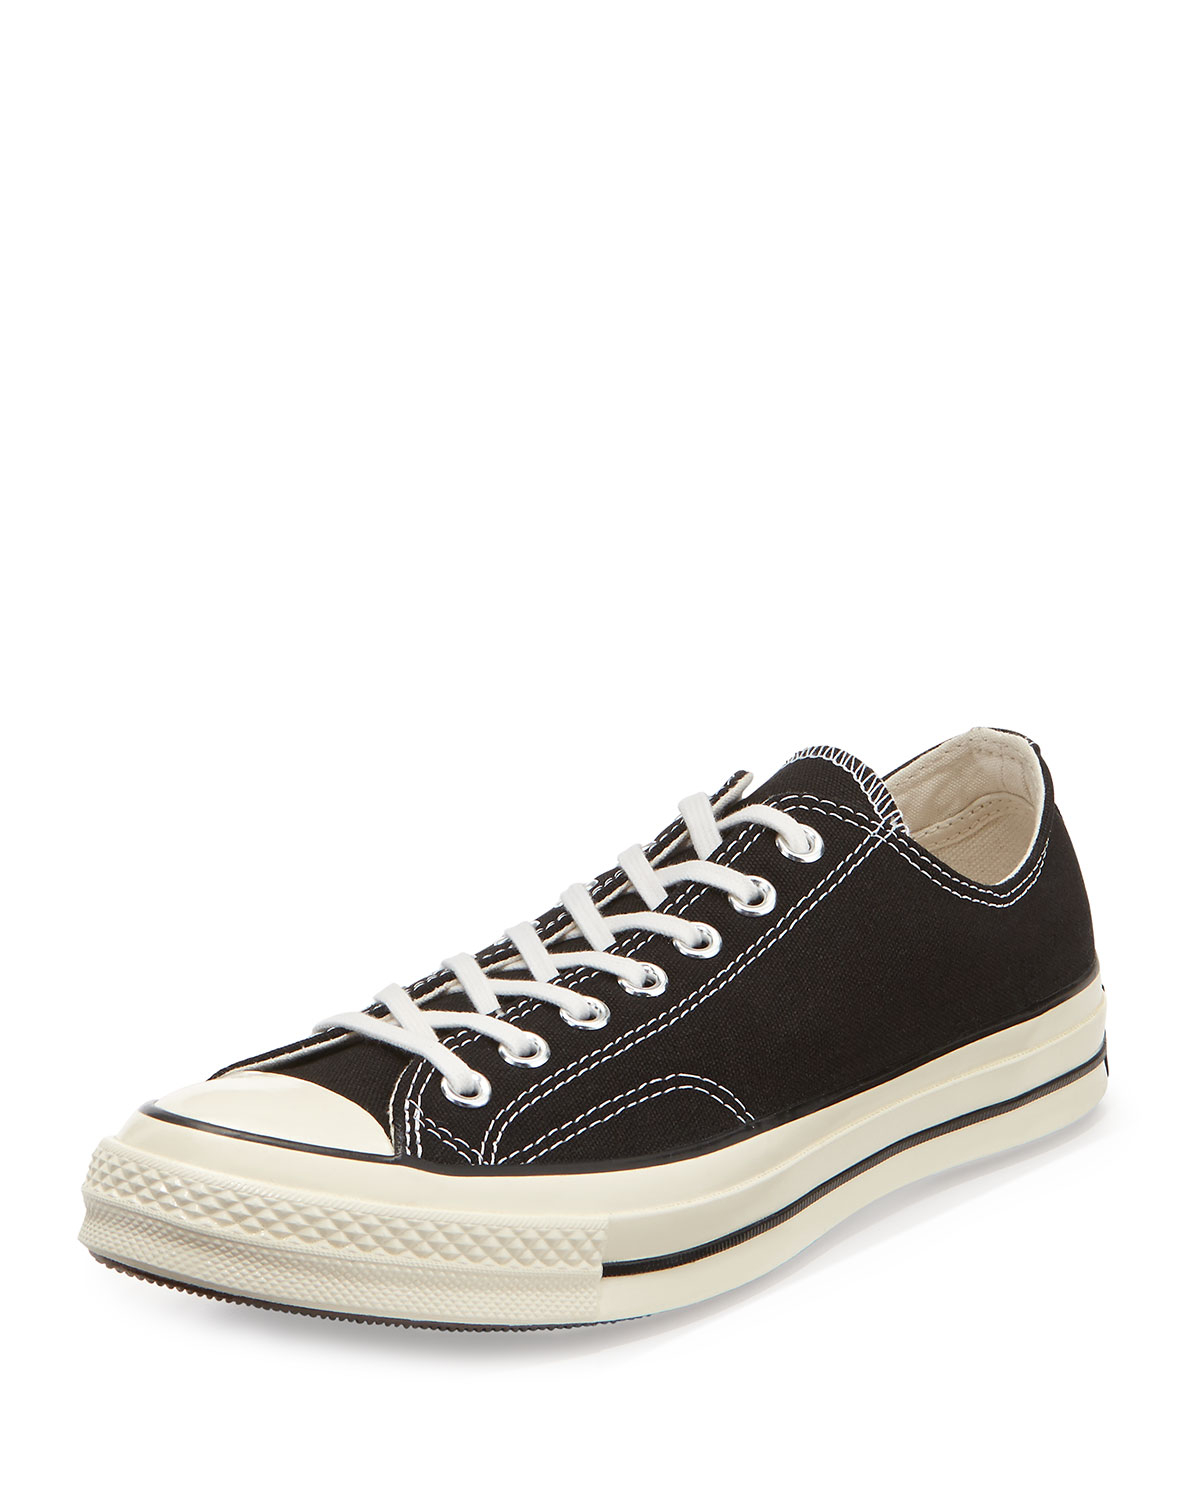 fbaedc2dd86ad7 Lyst - Converse All Star Chuck 70 Low-top Sneaker in Black for Men